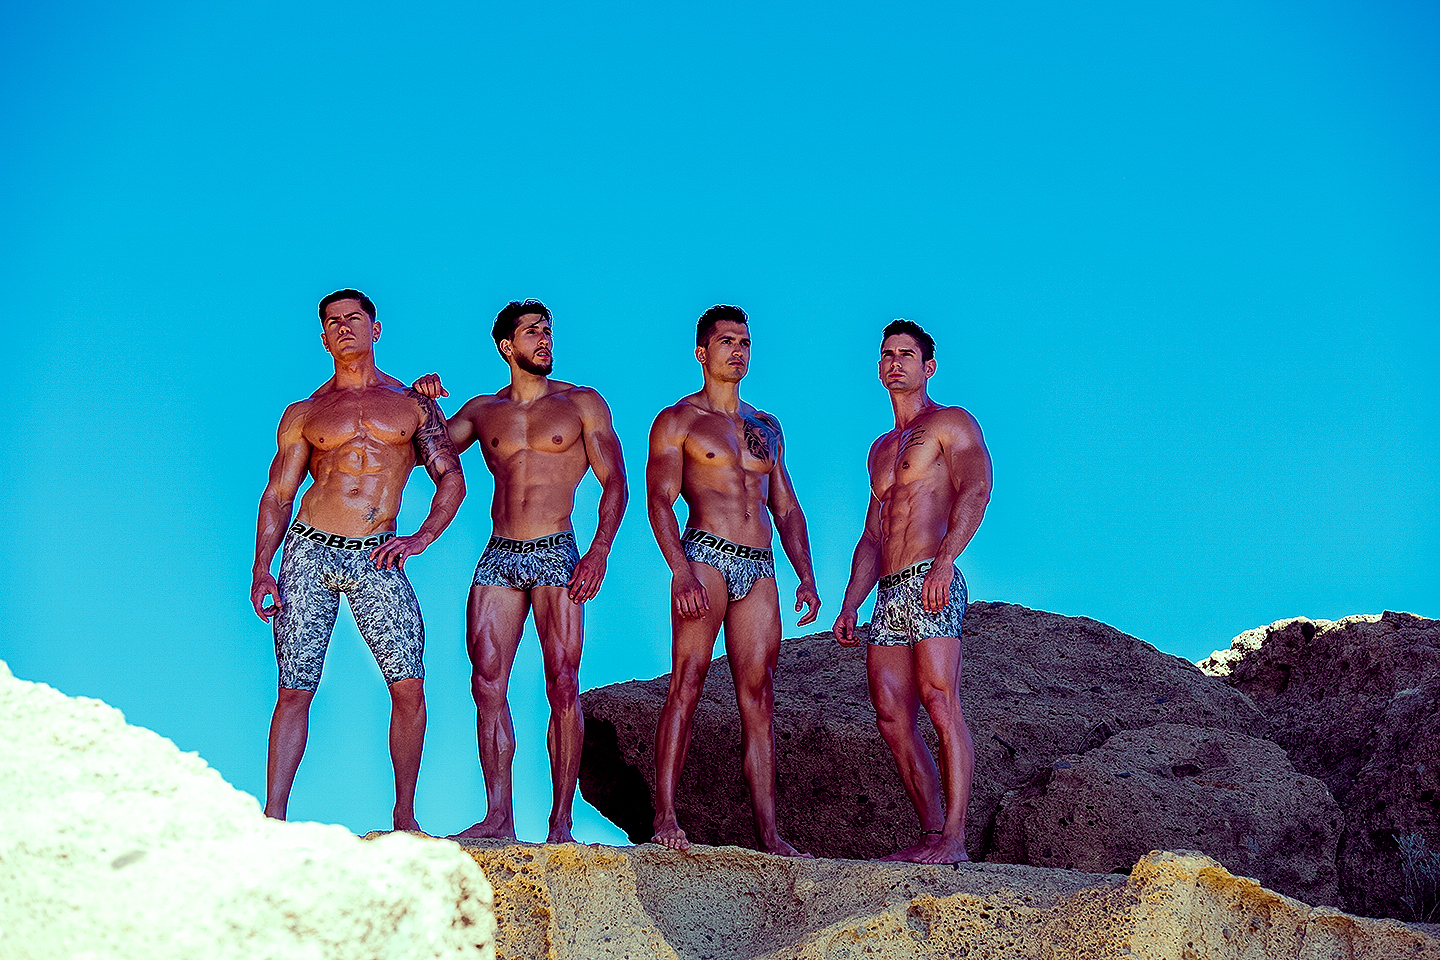 Underwear brand MaleBasics and photographer Adrián C. Martín team up to make a fitness motivational set with fitness models Eric Jurado, Airam Amador, Federico Averame and Javier Morales, all modeling the sexy pieces.